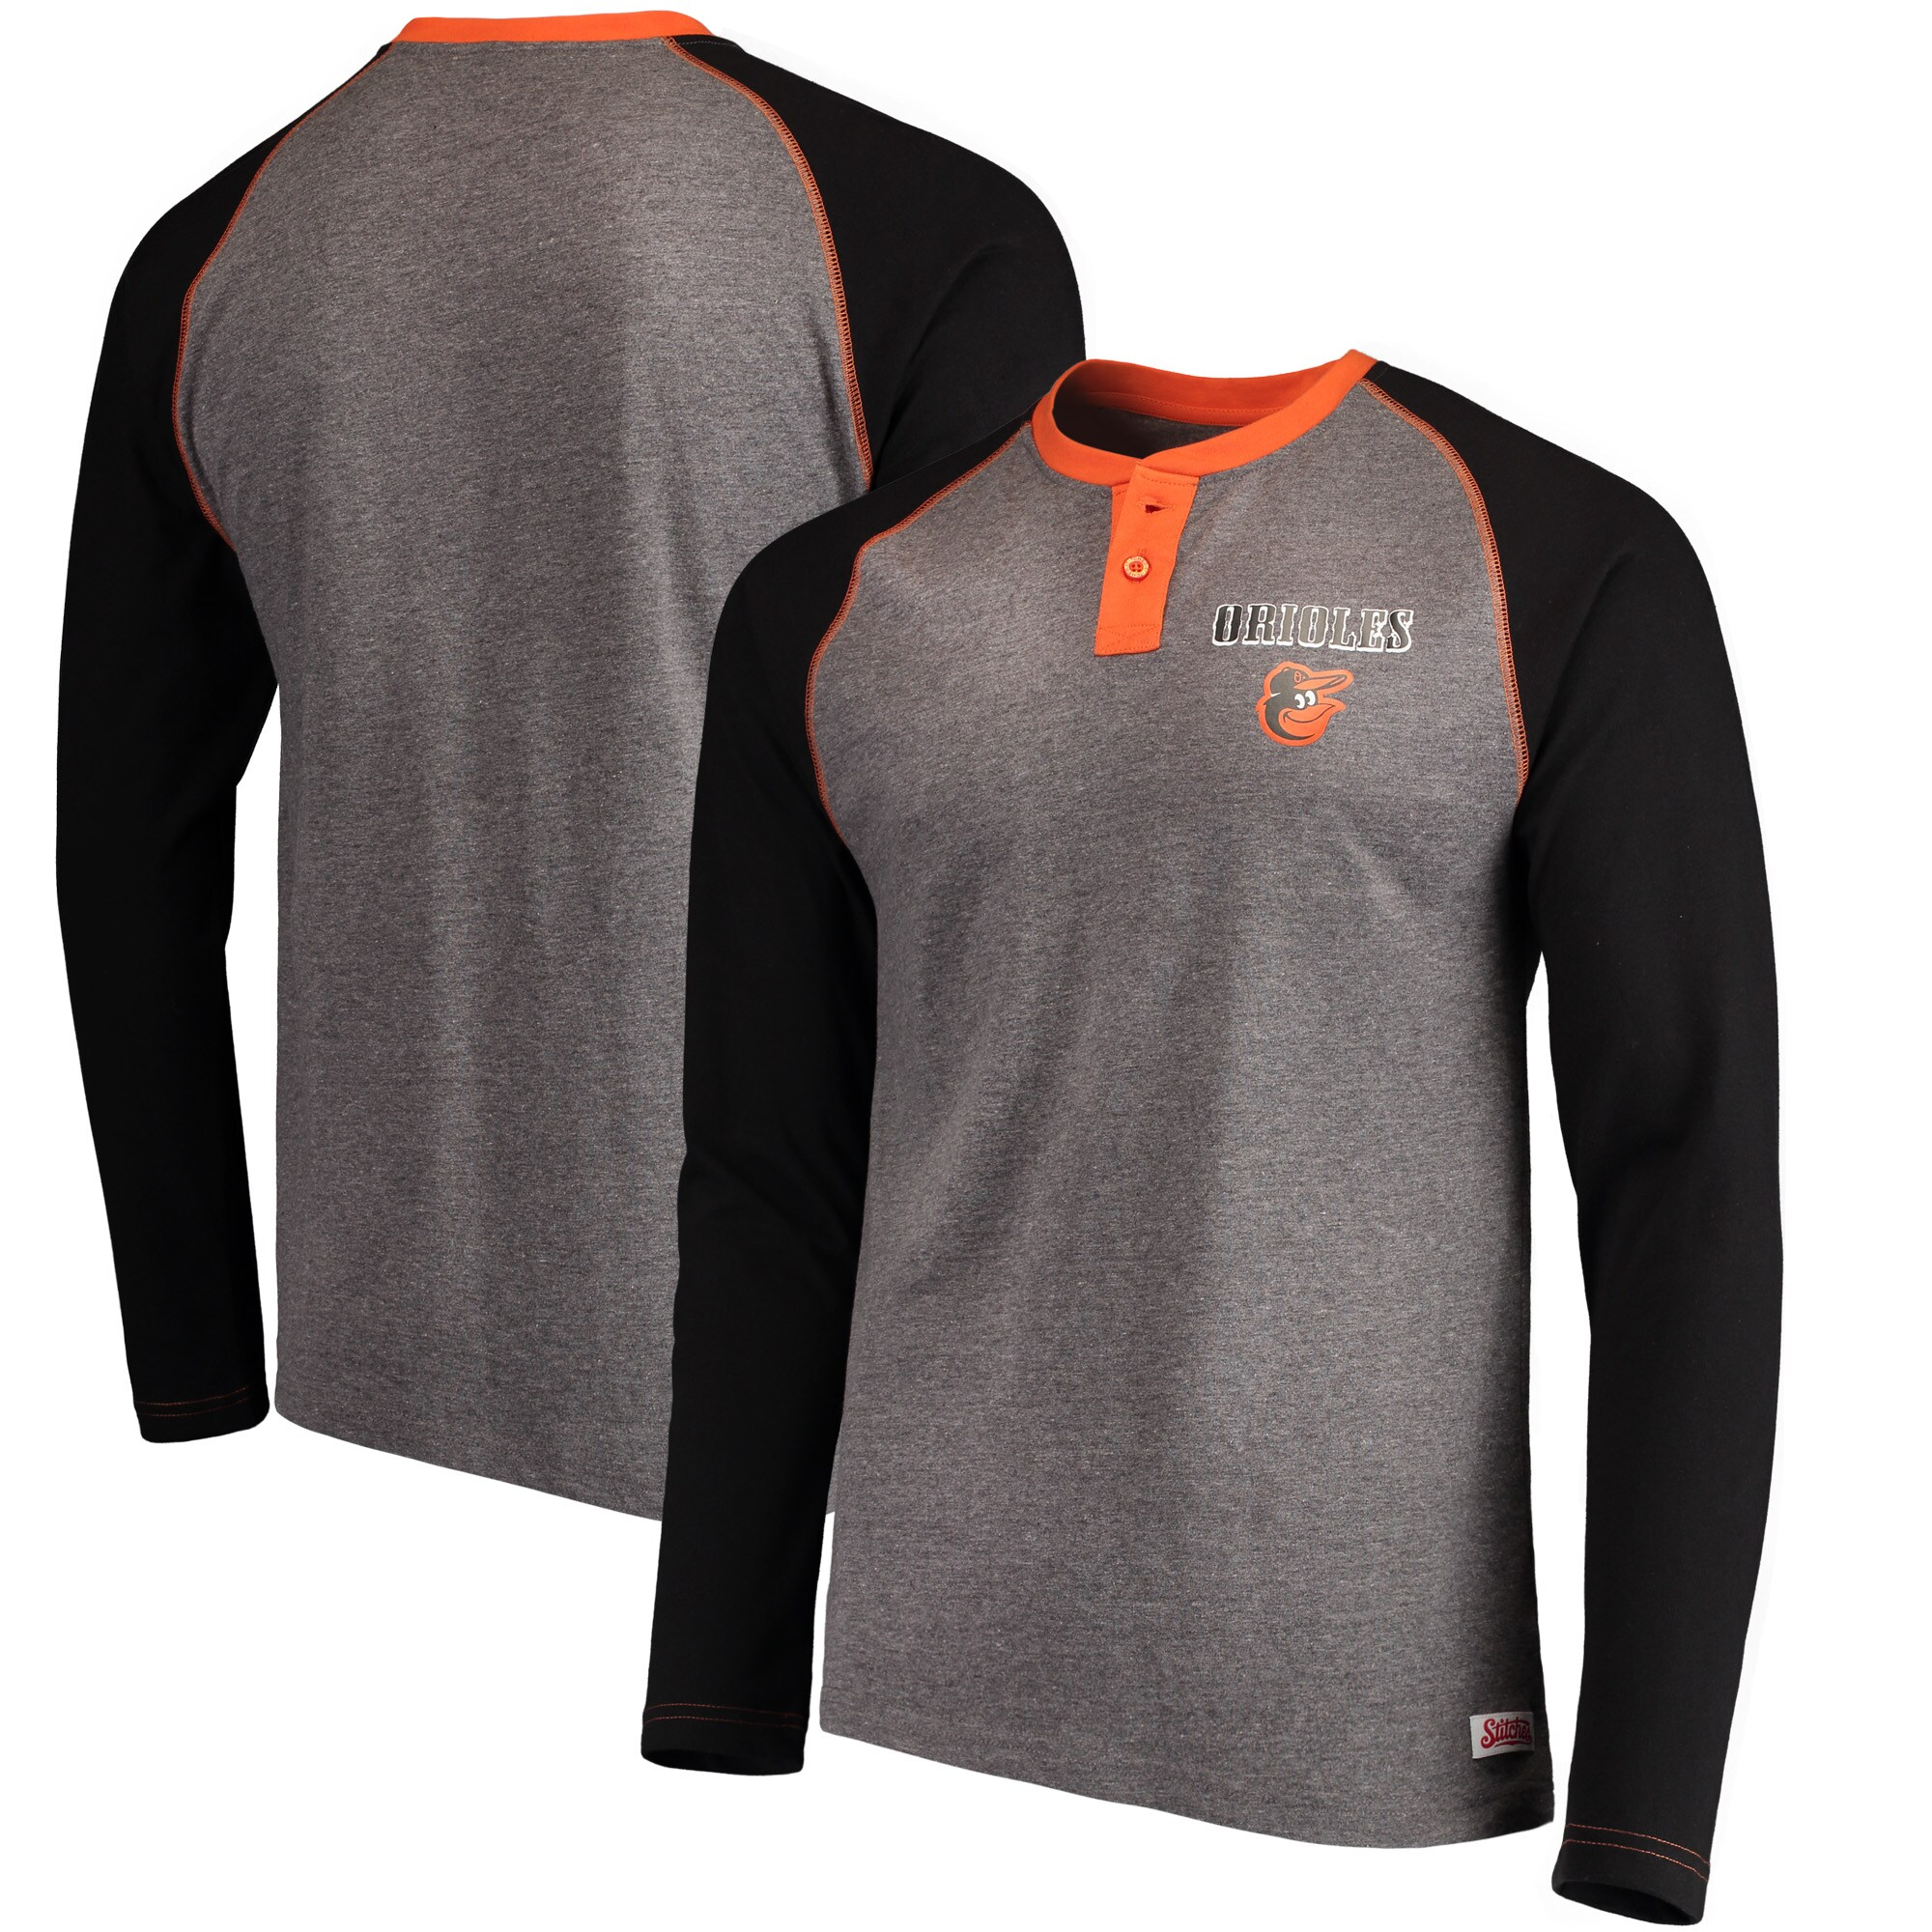 Baltimore Orioles Stitches Home Run Long Sleeve Henley T-Shirt - Heathered Gray/Black